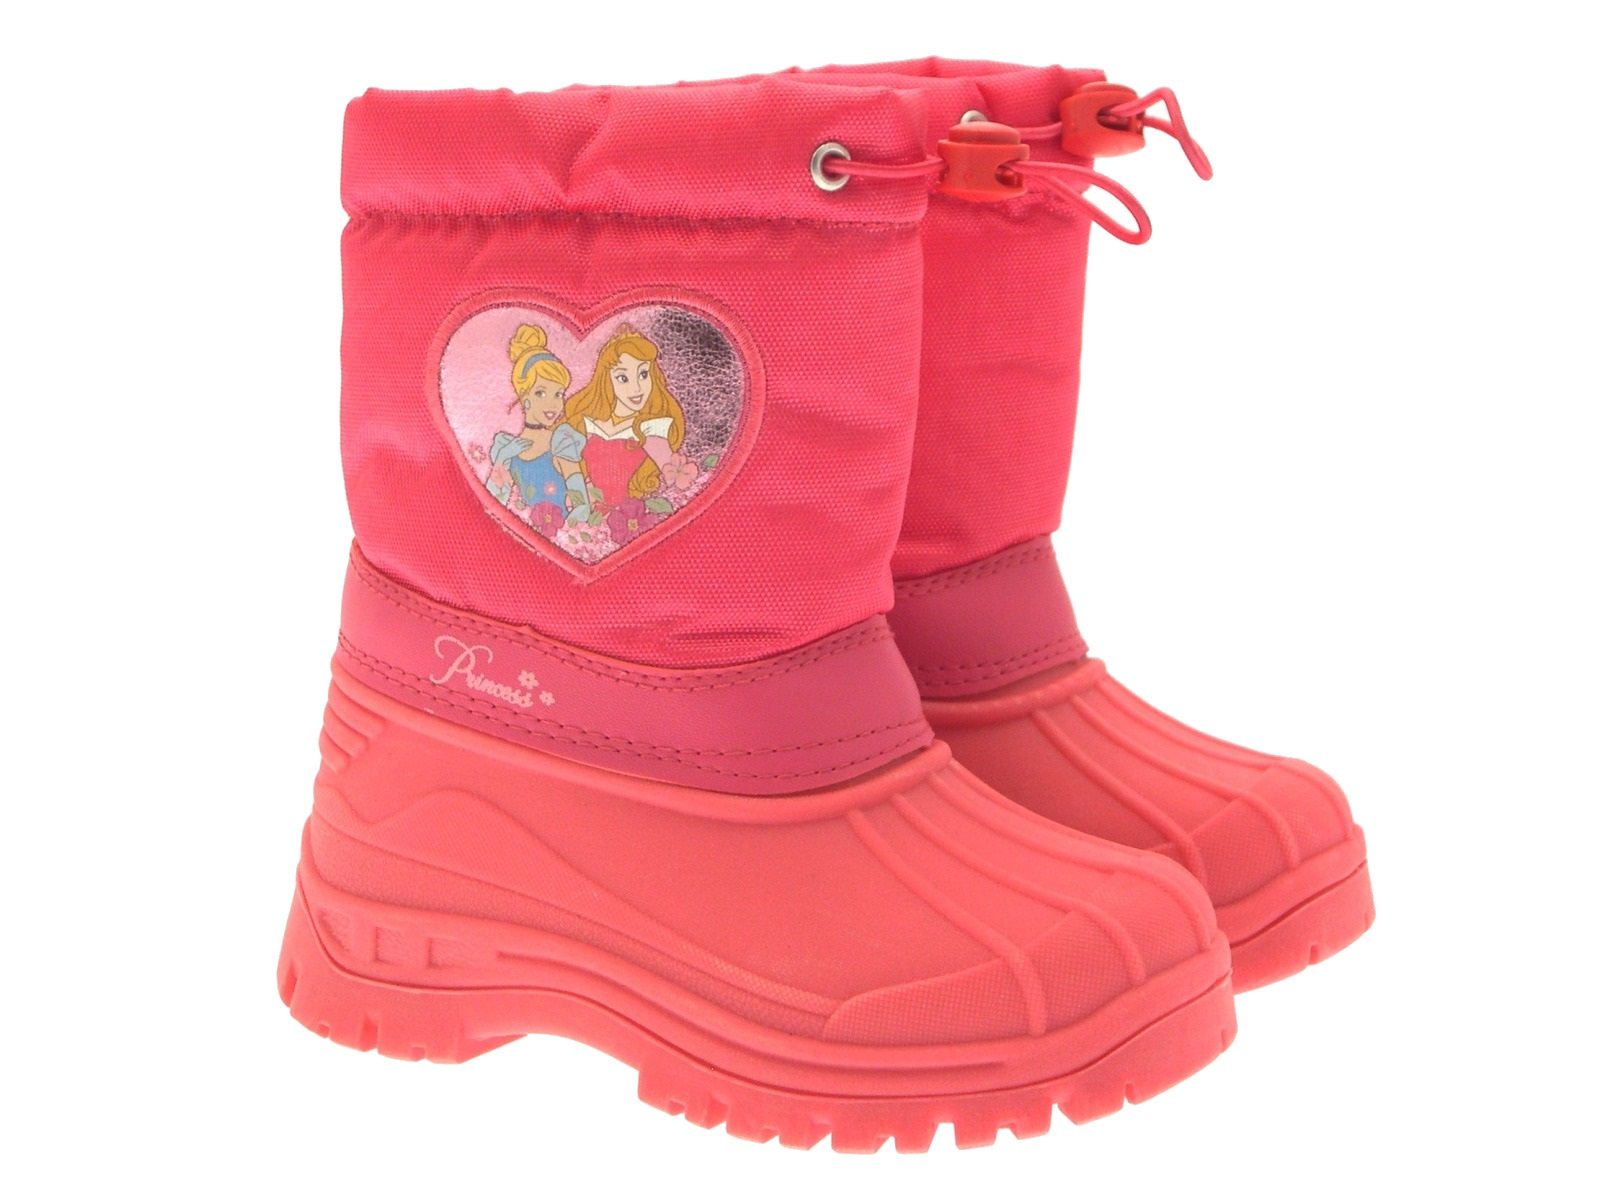 Kids Girls Disney Princess Pink Rain Snow Boots Wellies Wellingtons Size UK 7-13